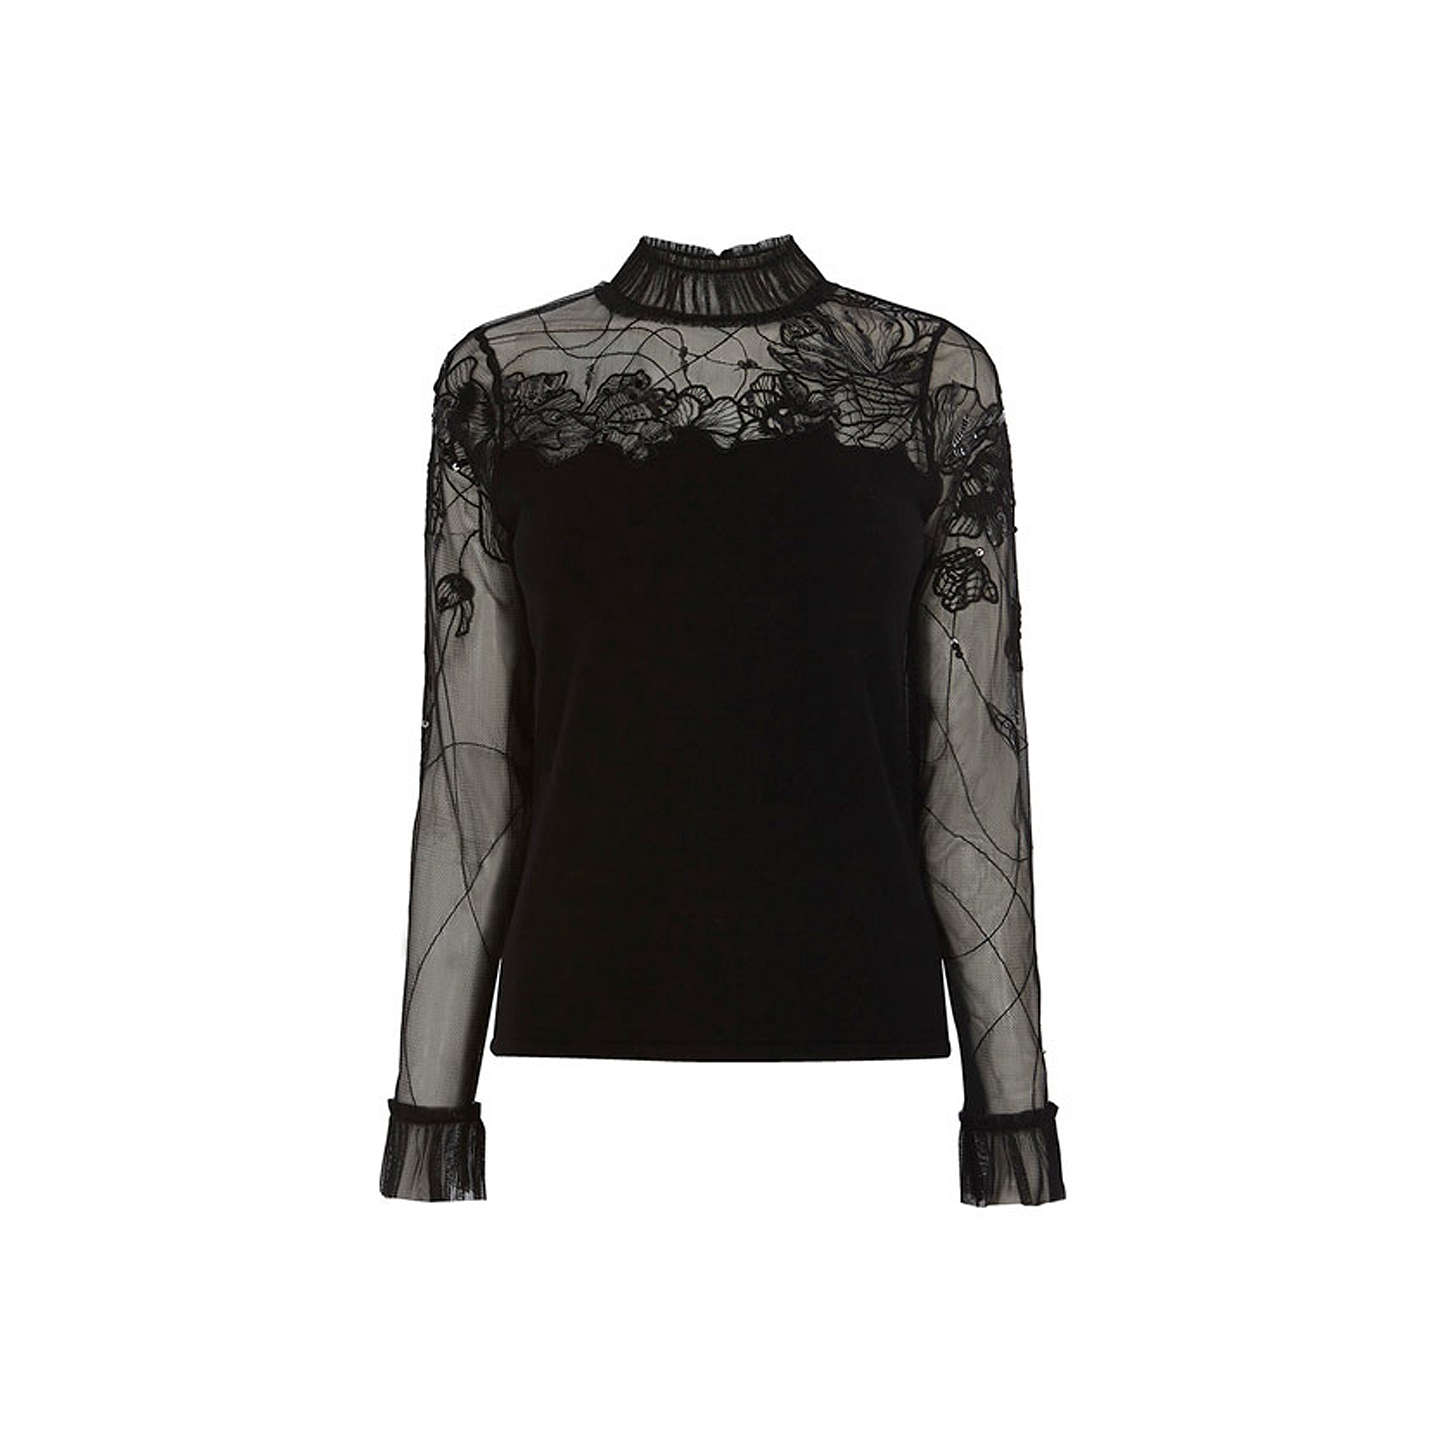 BuyCoast Ceri Tuille Beaded Knit Top, Black, 6 Online at johnlewis.com